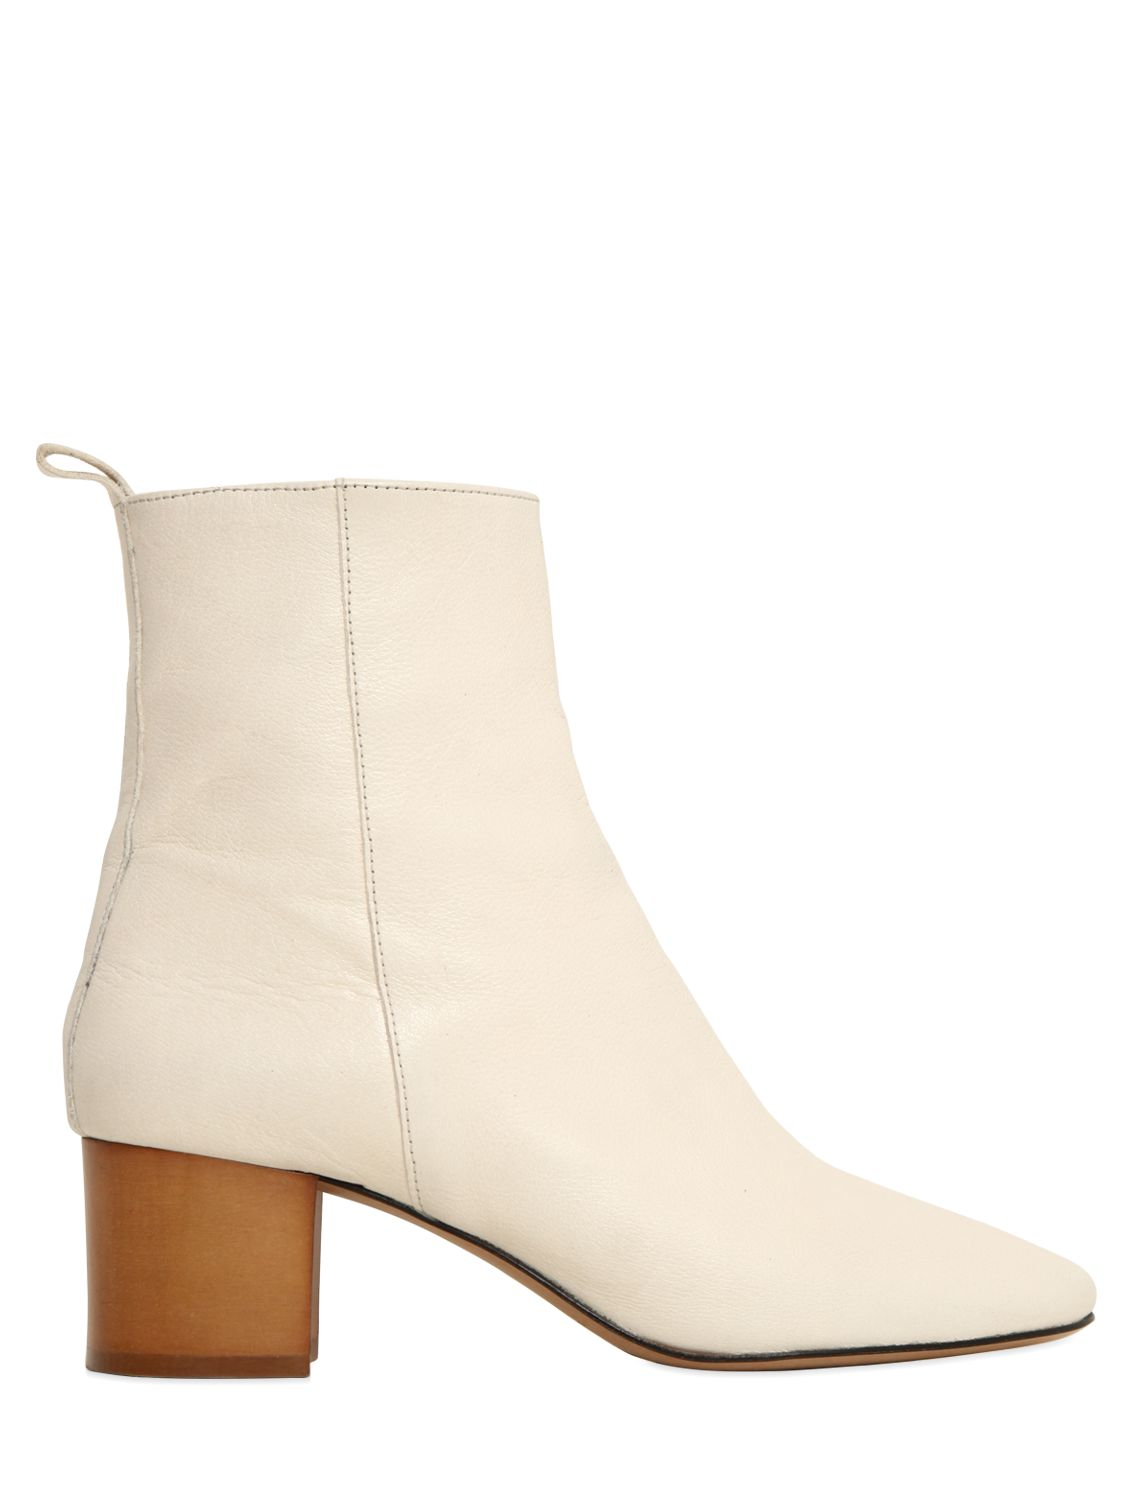 chunky heel boots - Brown Isabel Marant Brand New Unisex For Sale Get Authentic Sale Online Buy Cheap Buy Buy Cheap Best Store To Get 73u77U3HM